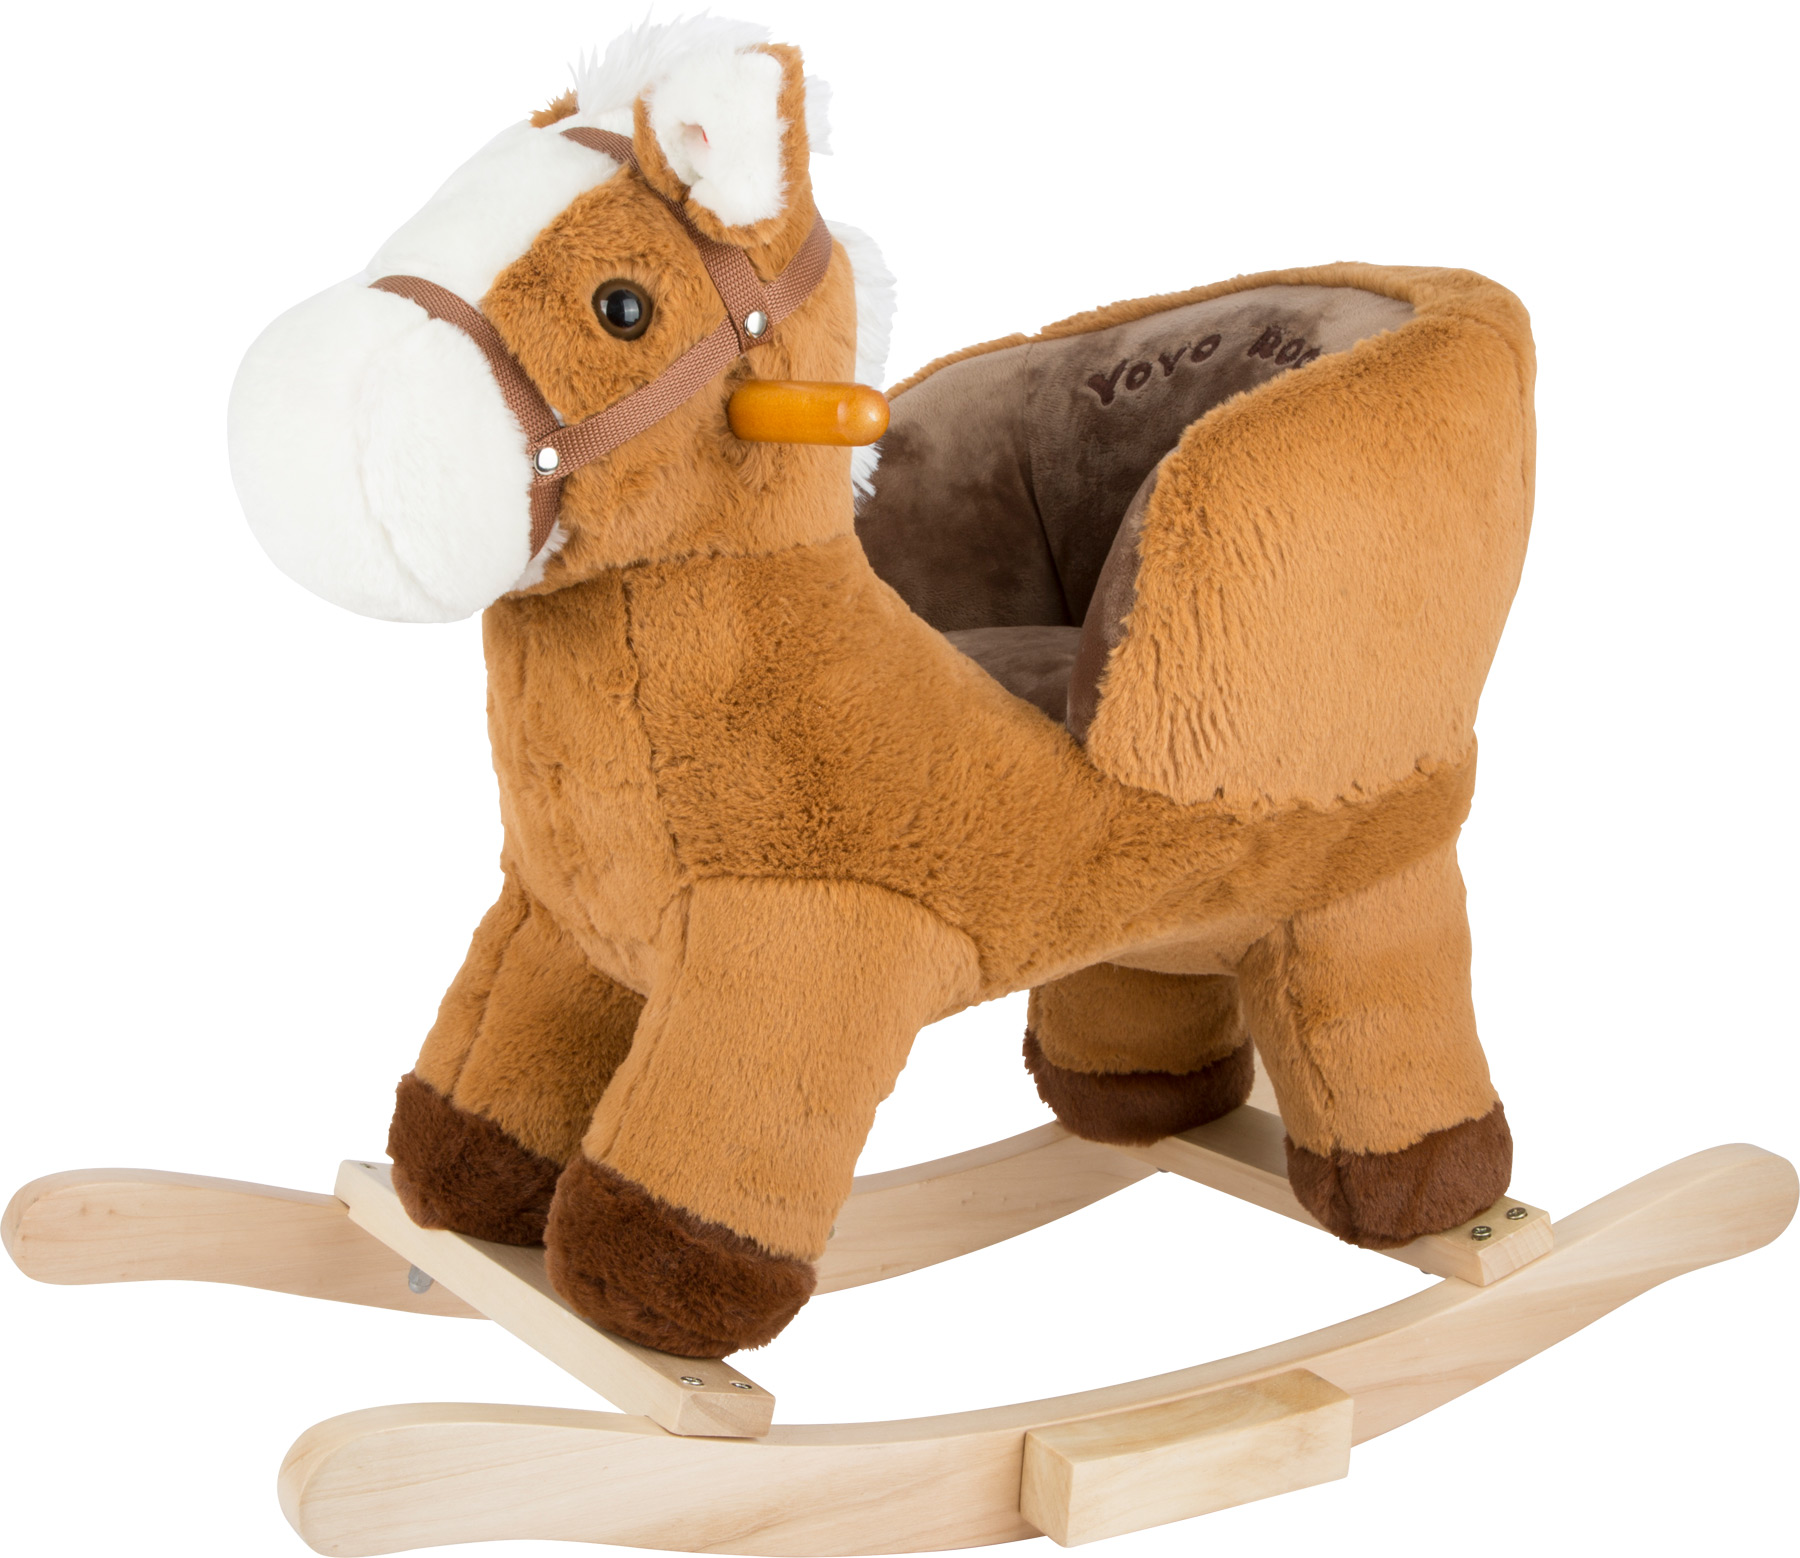 Rocking Horse with Seat Rocking Horse up to 3 years Toys for